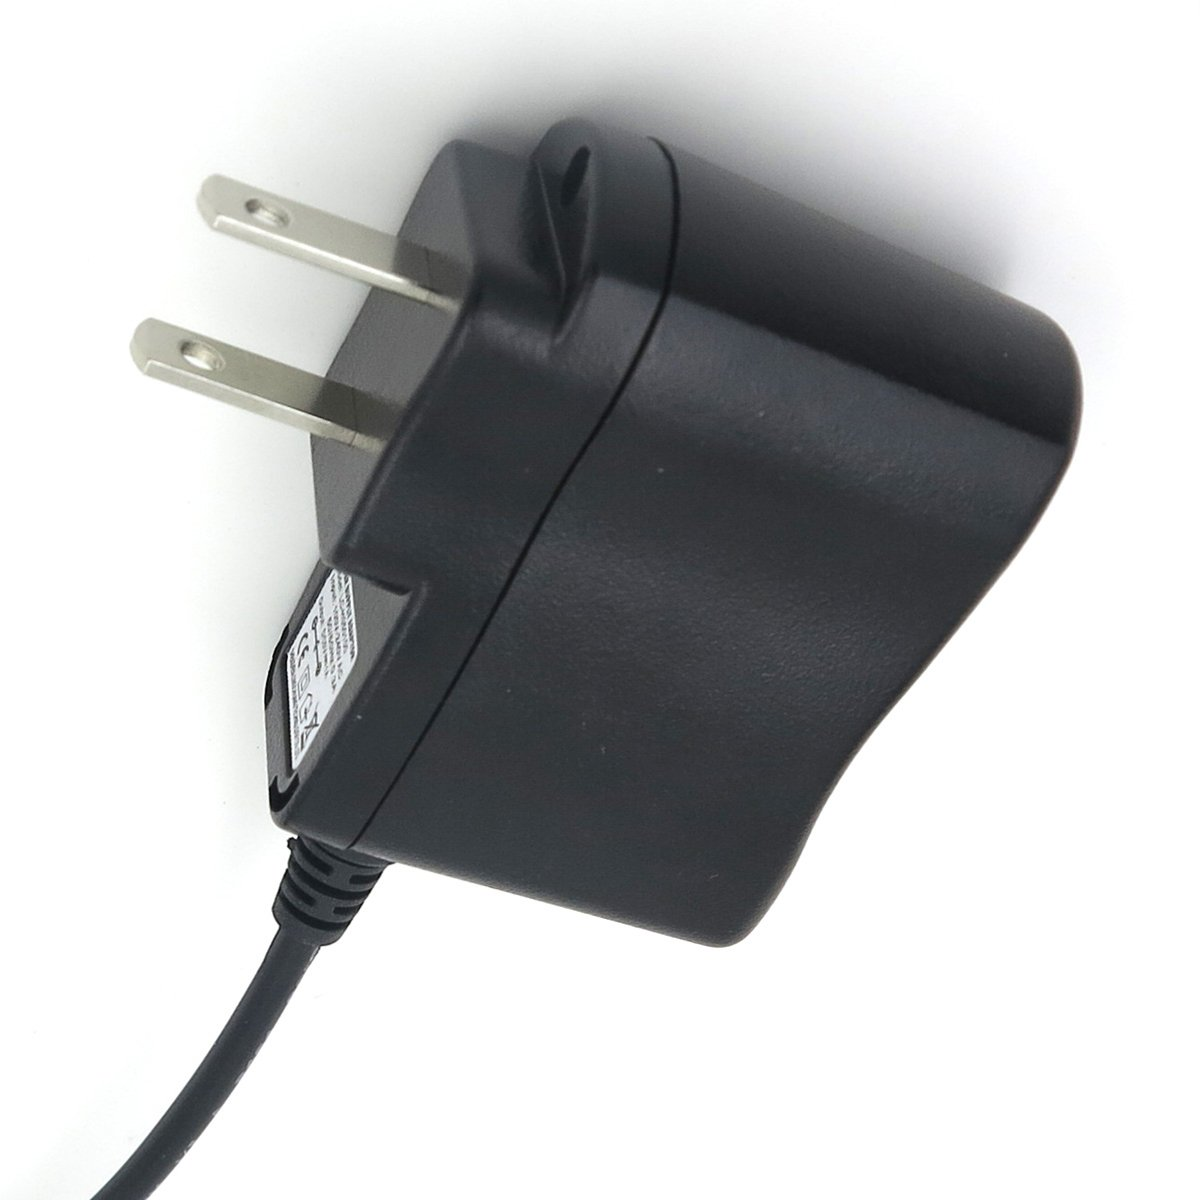 Amazon.com: 5V 0.8A AC DC Power Adapter Charger for Lithium ...